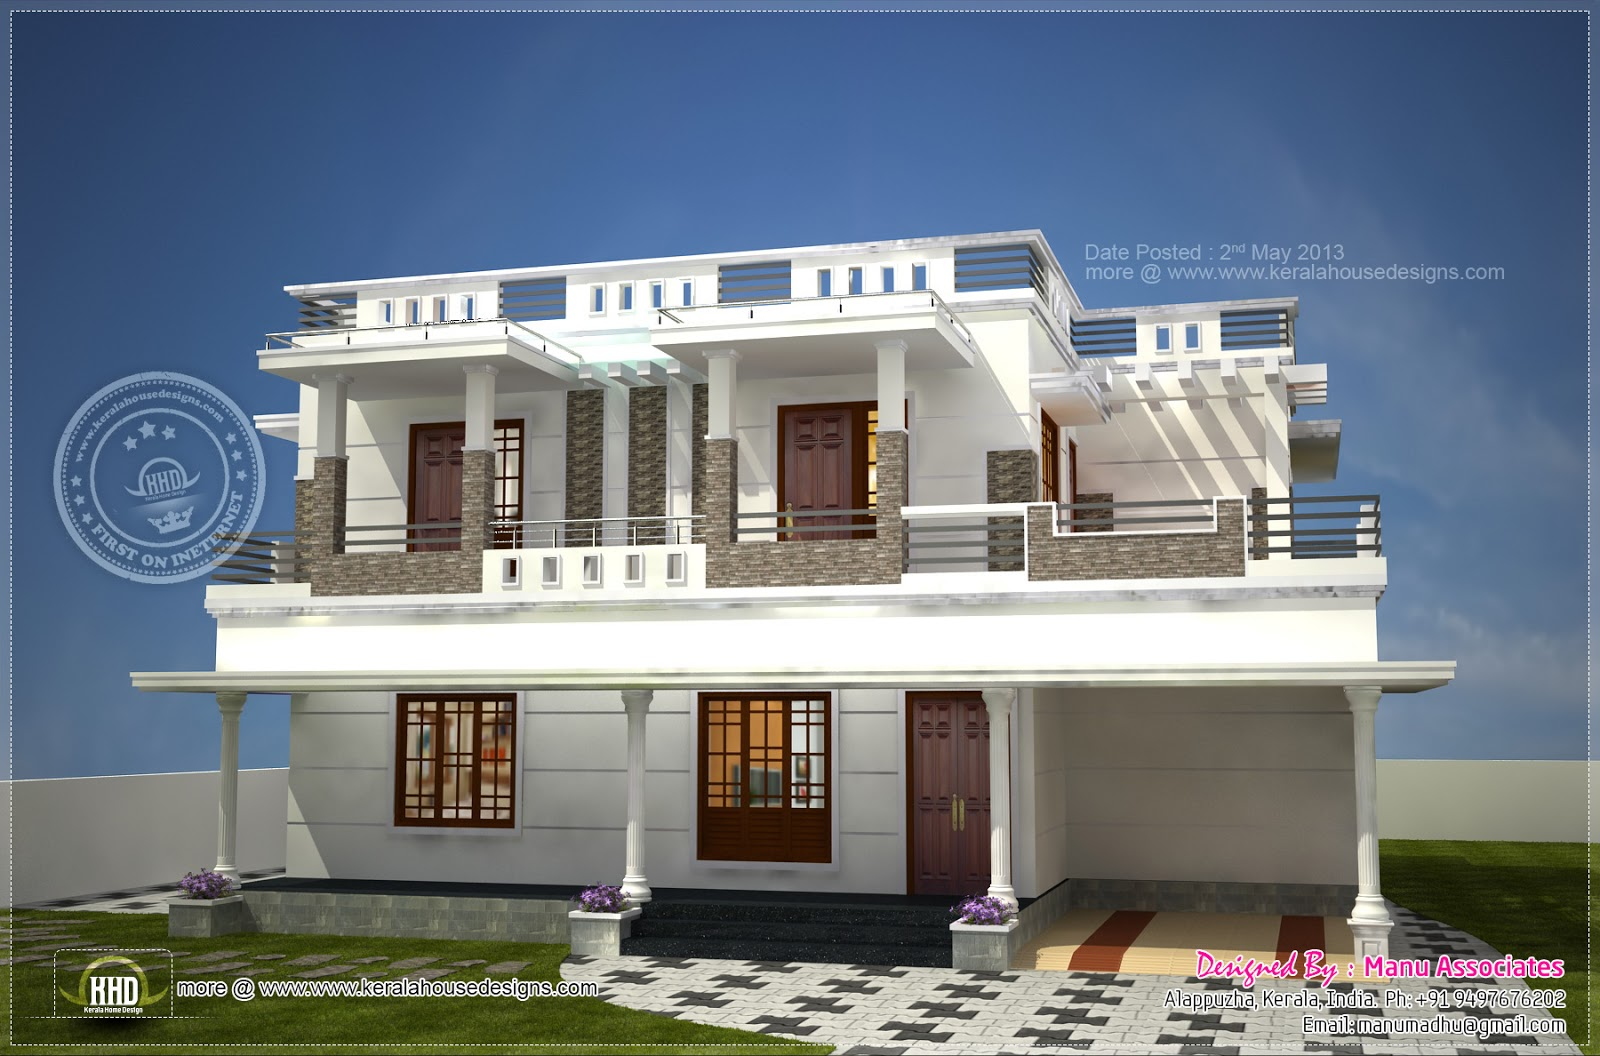 June 2014 Home Kerala Plans: modern home building plans